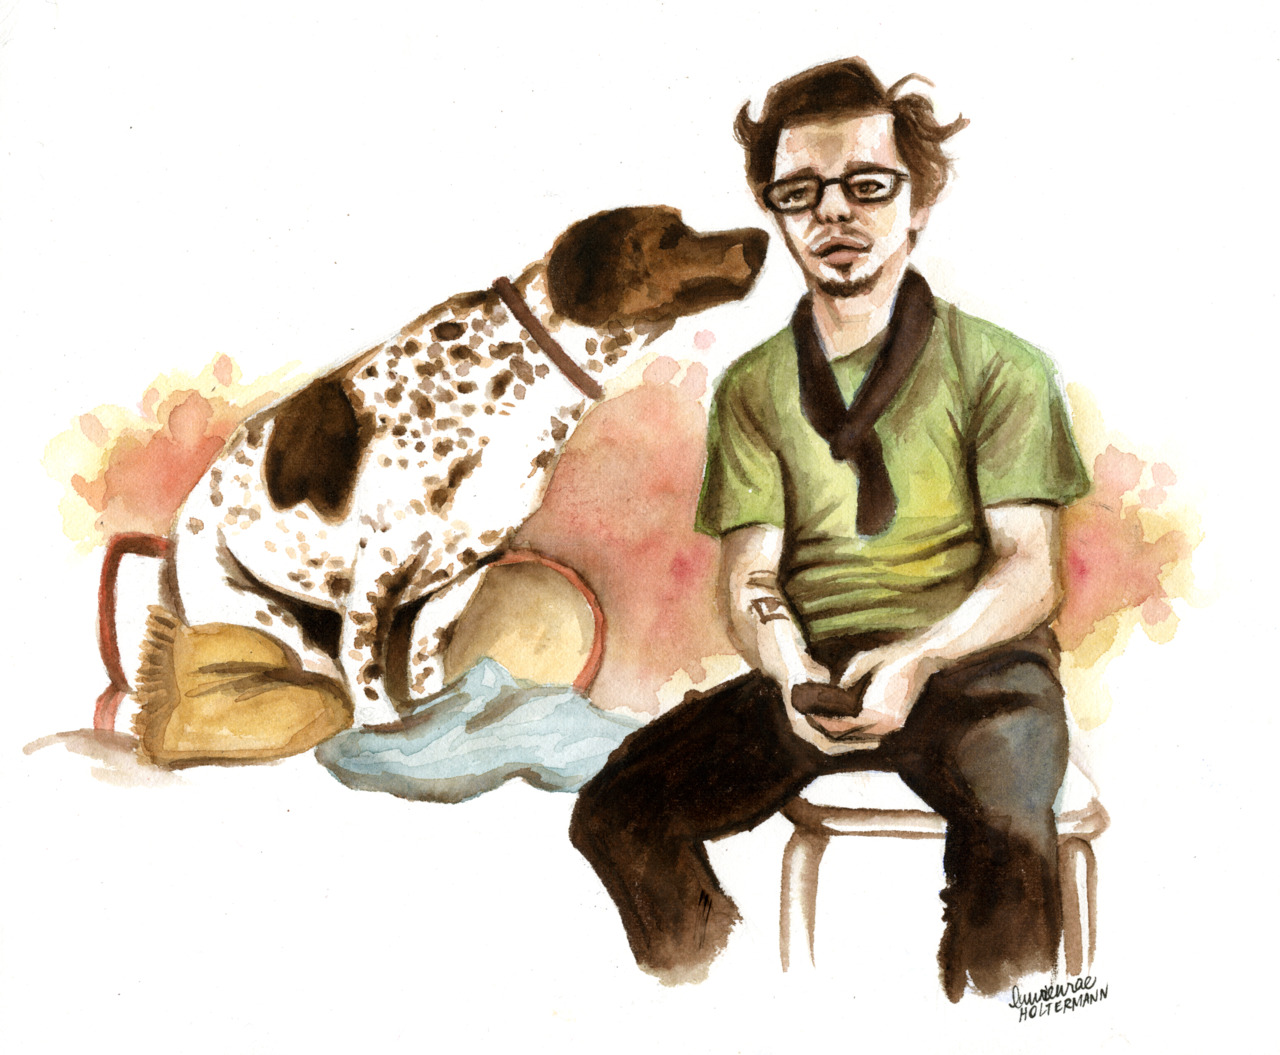 Beth Spencer commissioned me to do this illustration of our dear friend Shawn Youngblood and his badass dog Bernard for his birthday.